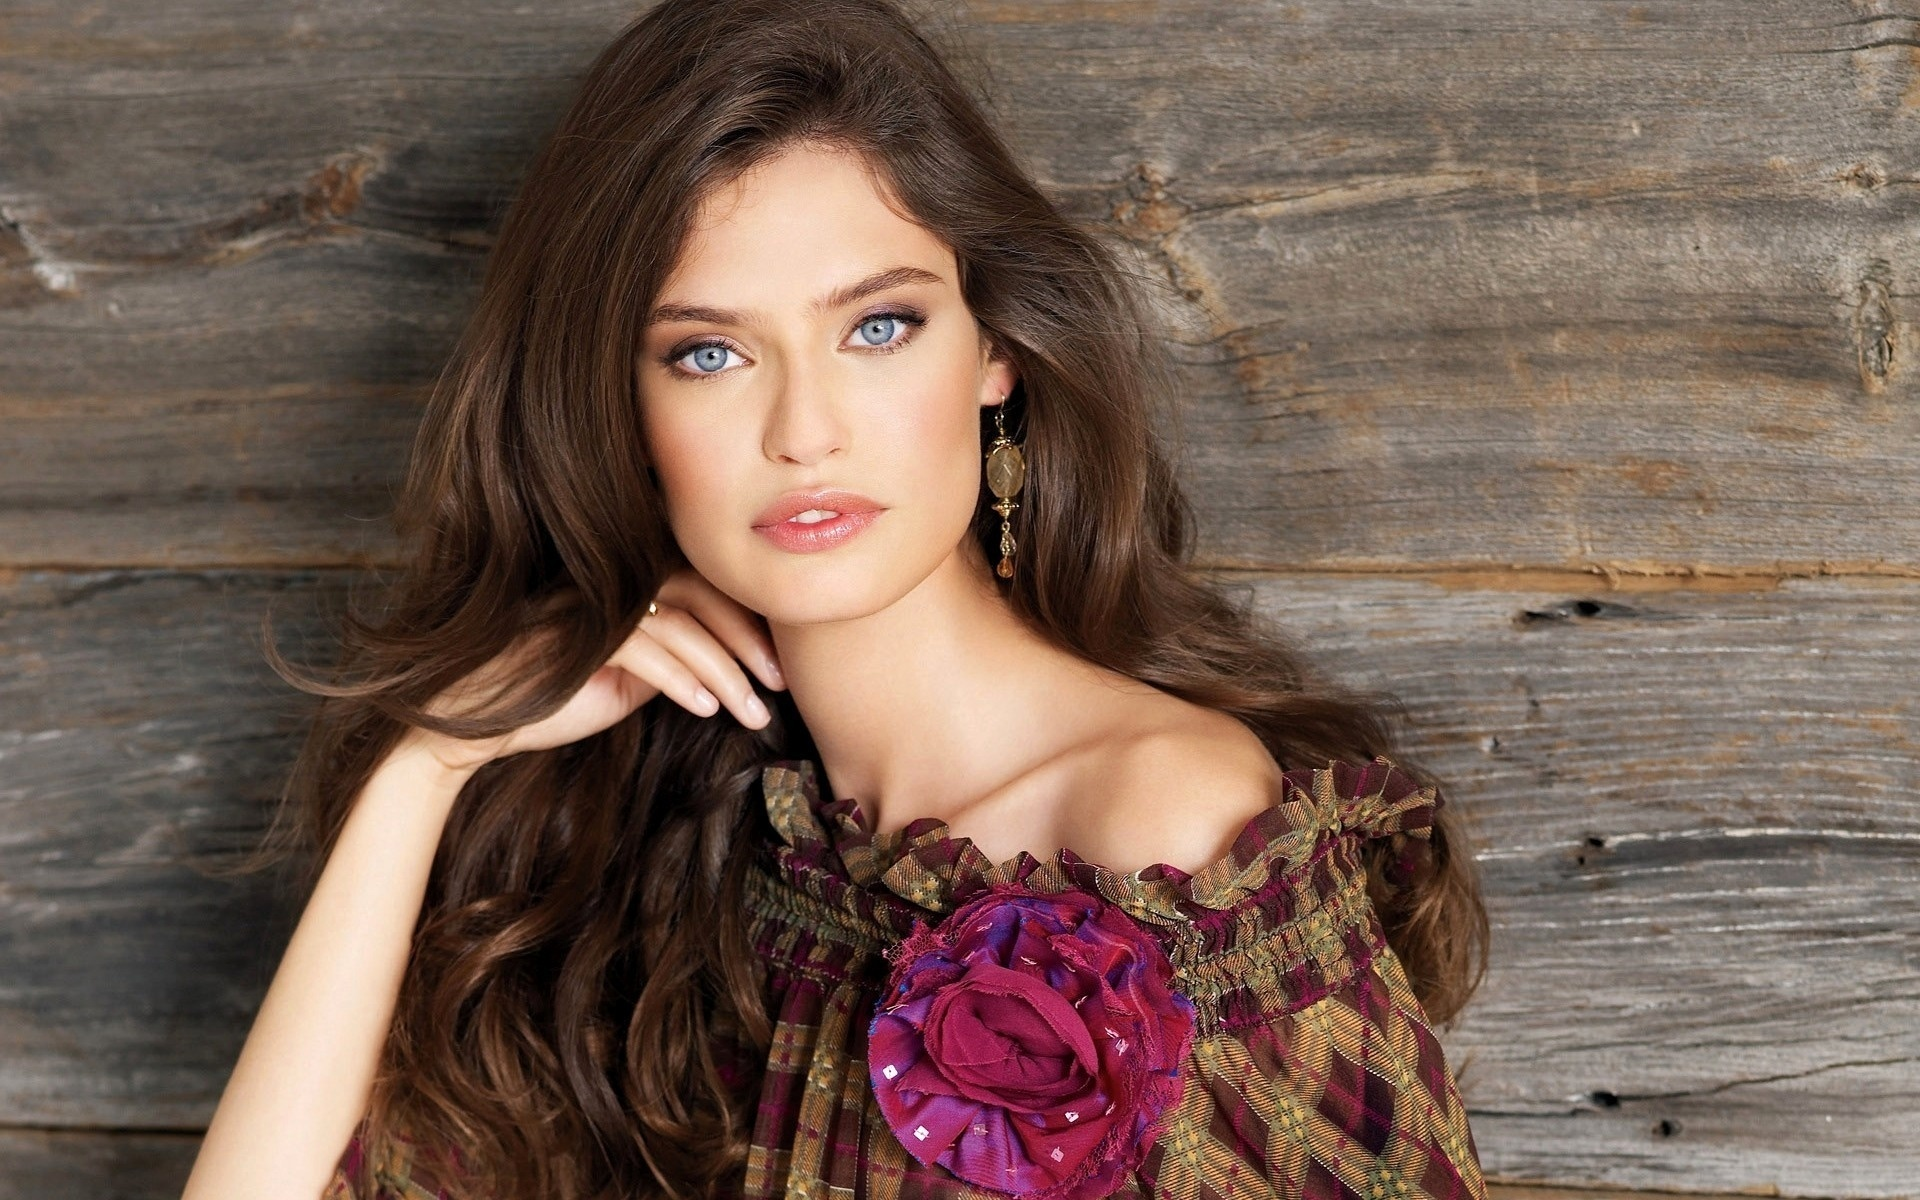 Supermodels wallpapers online images 6